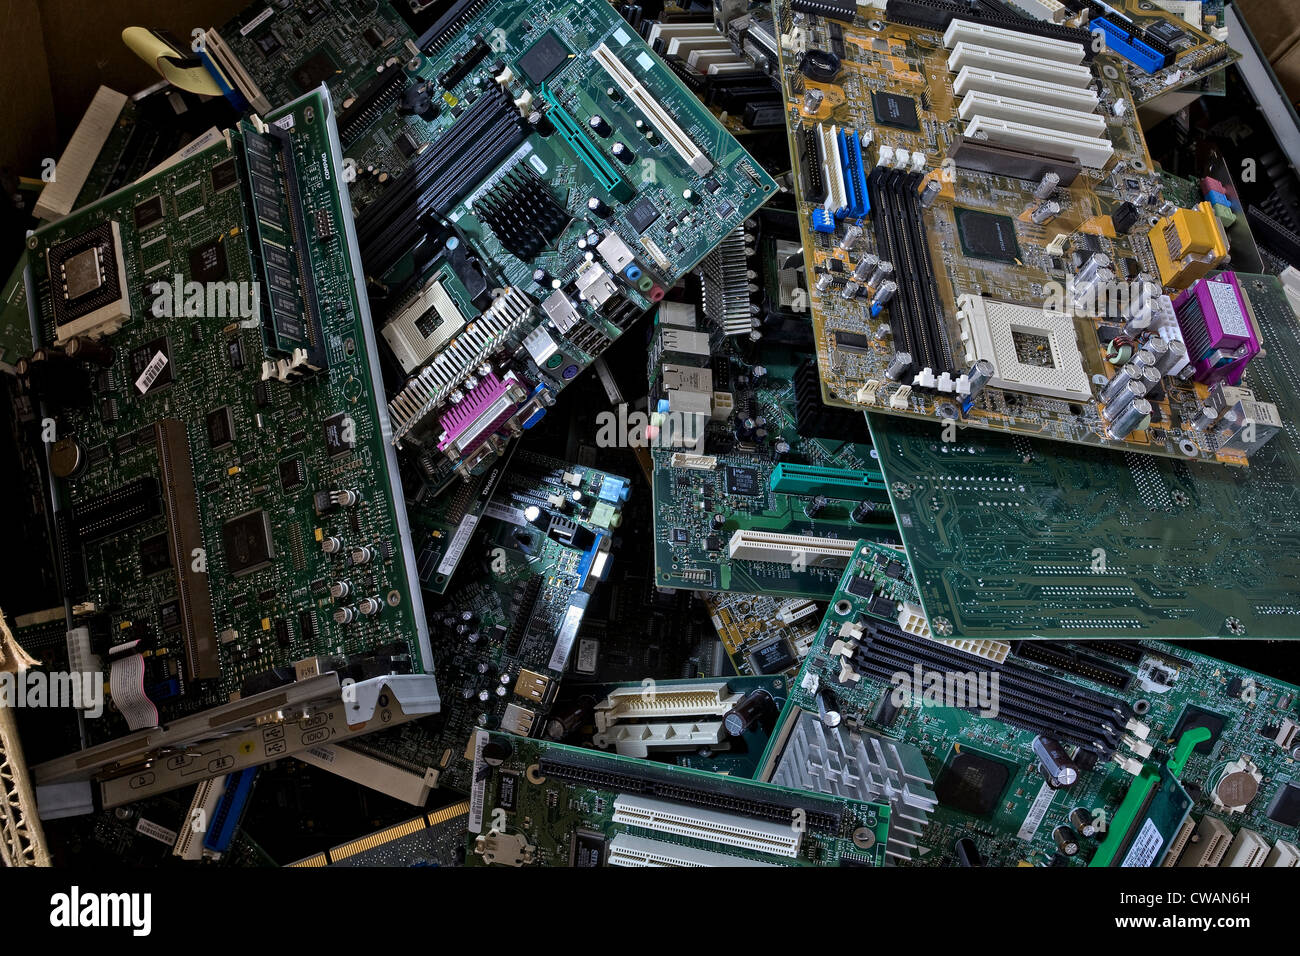 Old Circuit Boards Stock Photos Images Scrap Board Recycling Machine Computer Pile Of